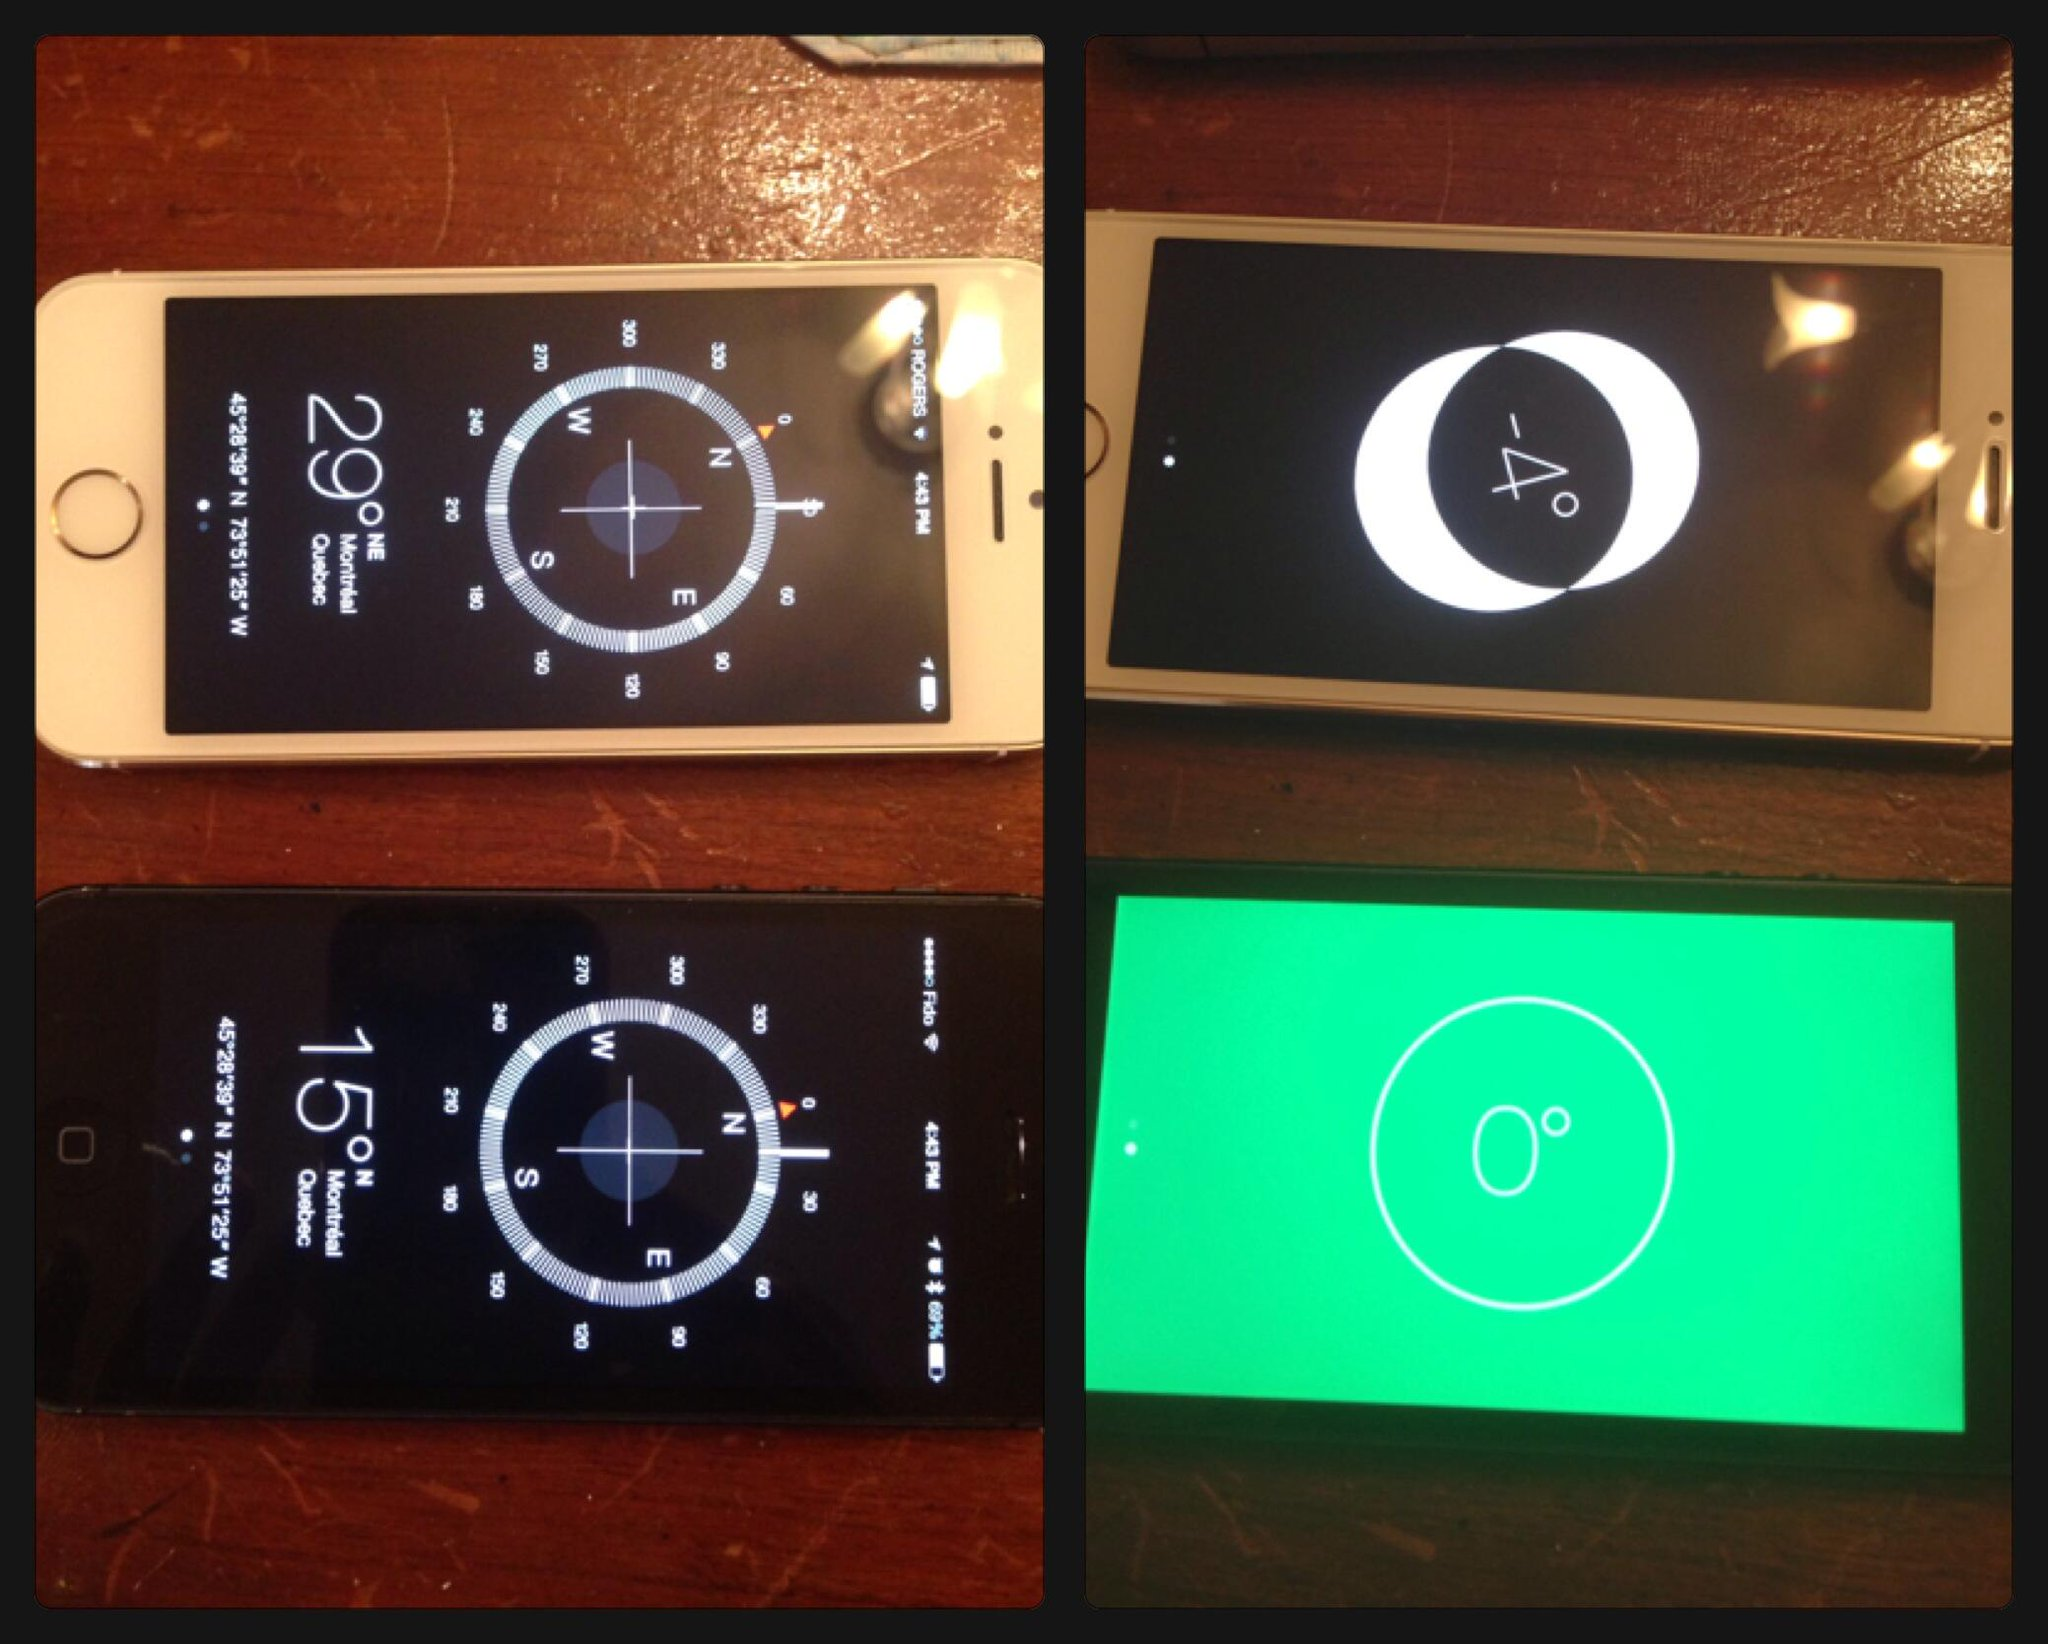 RT @Georgia_Prime: Yes the compass and level on the iPhone 5s is really off vs iPhone 5 http://t.co/xlpYvVOiCm